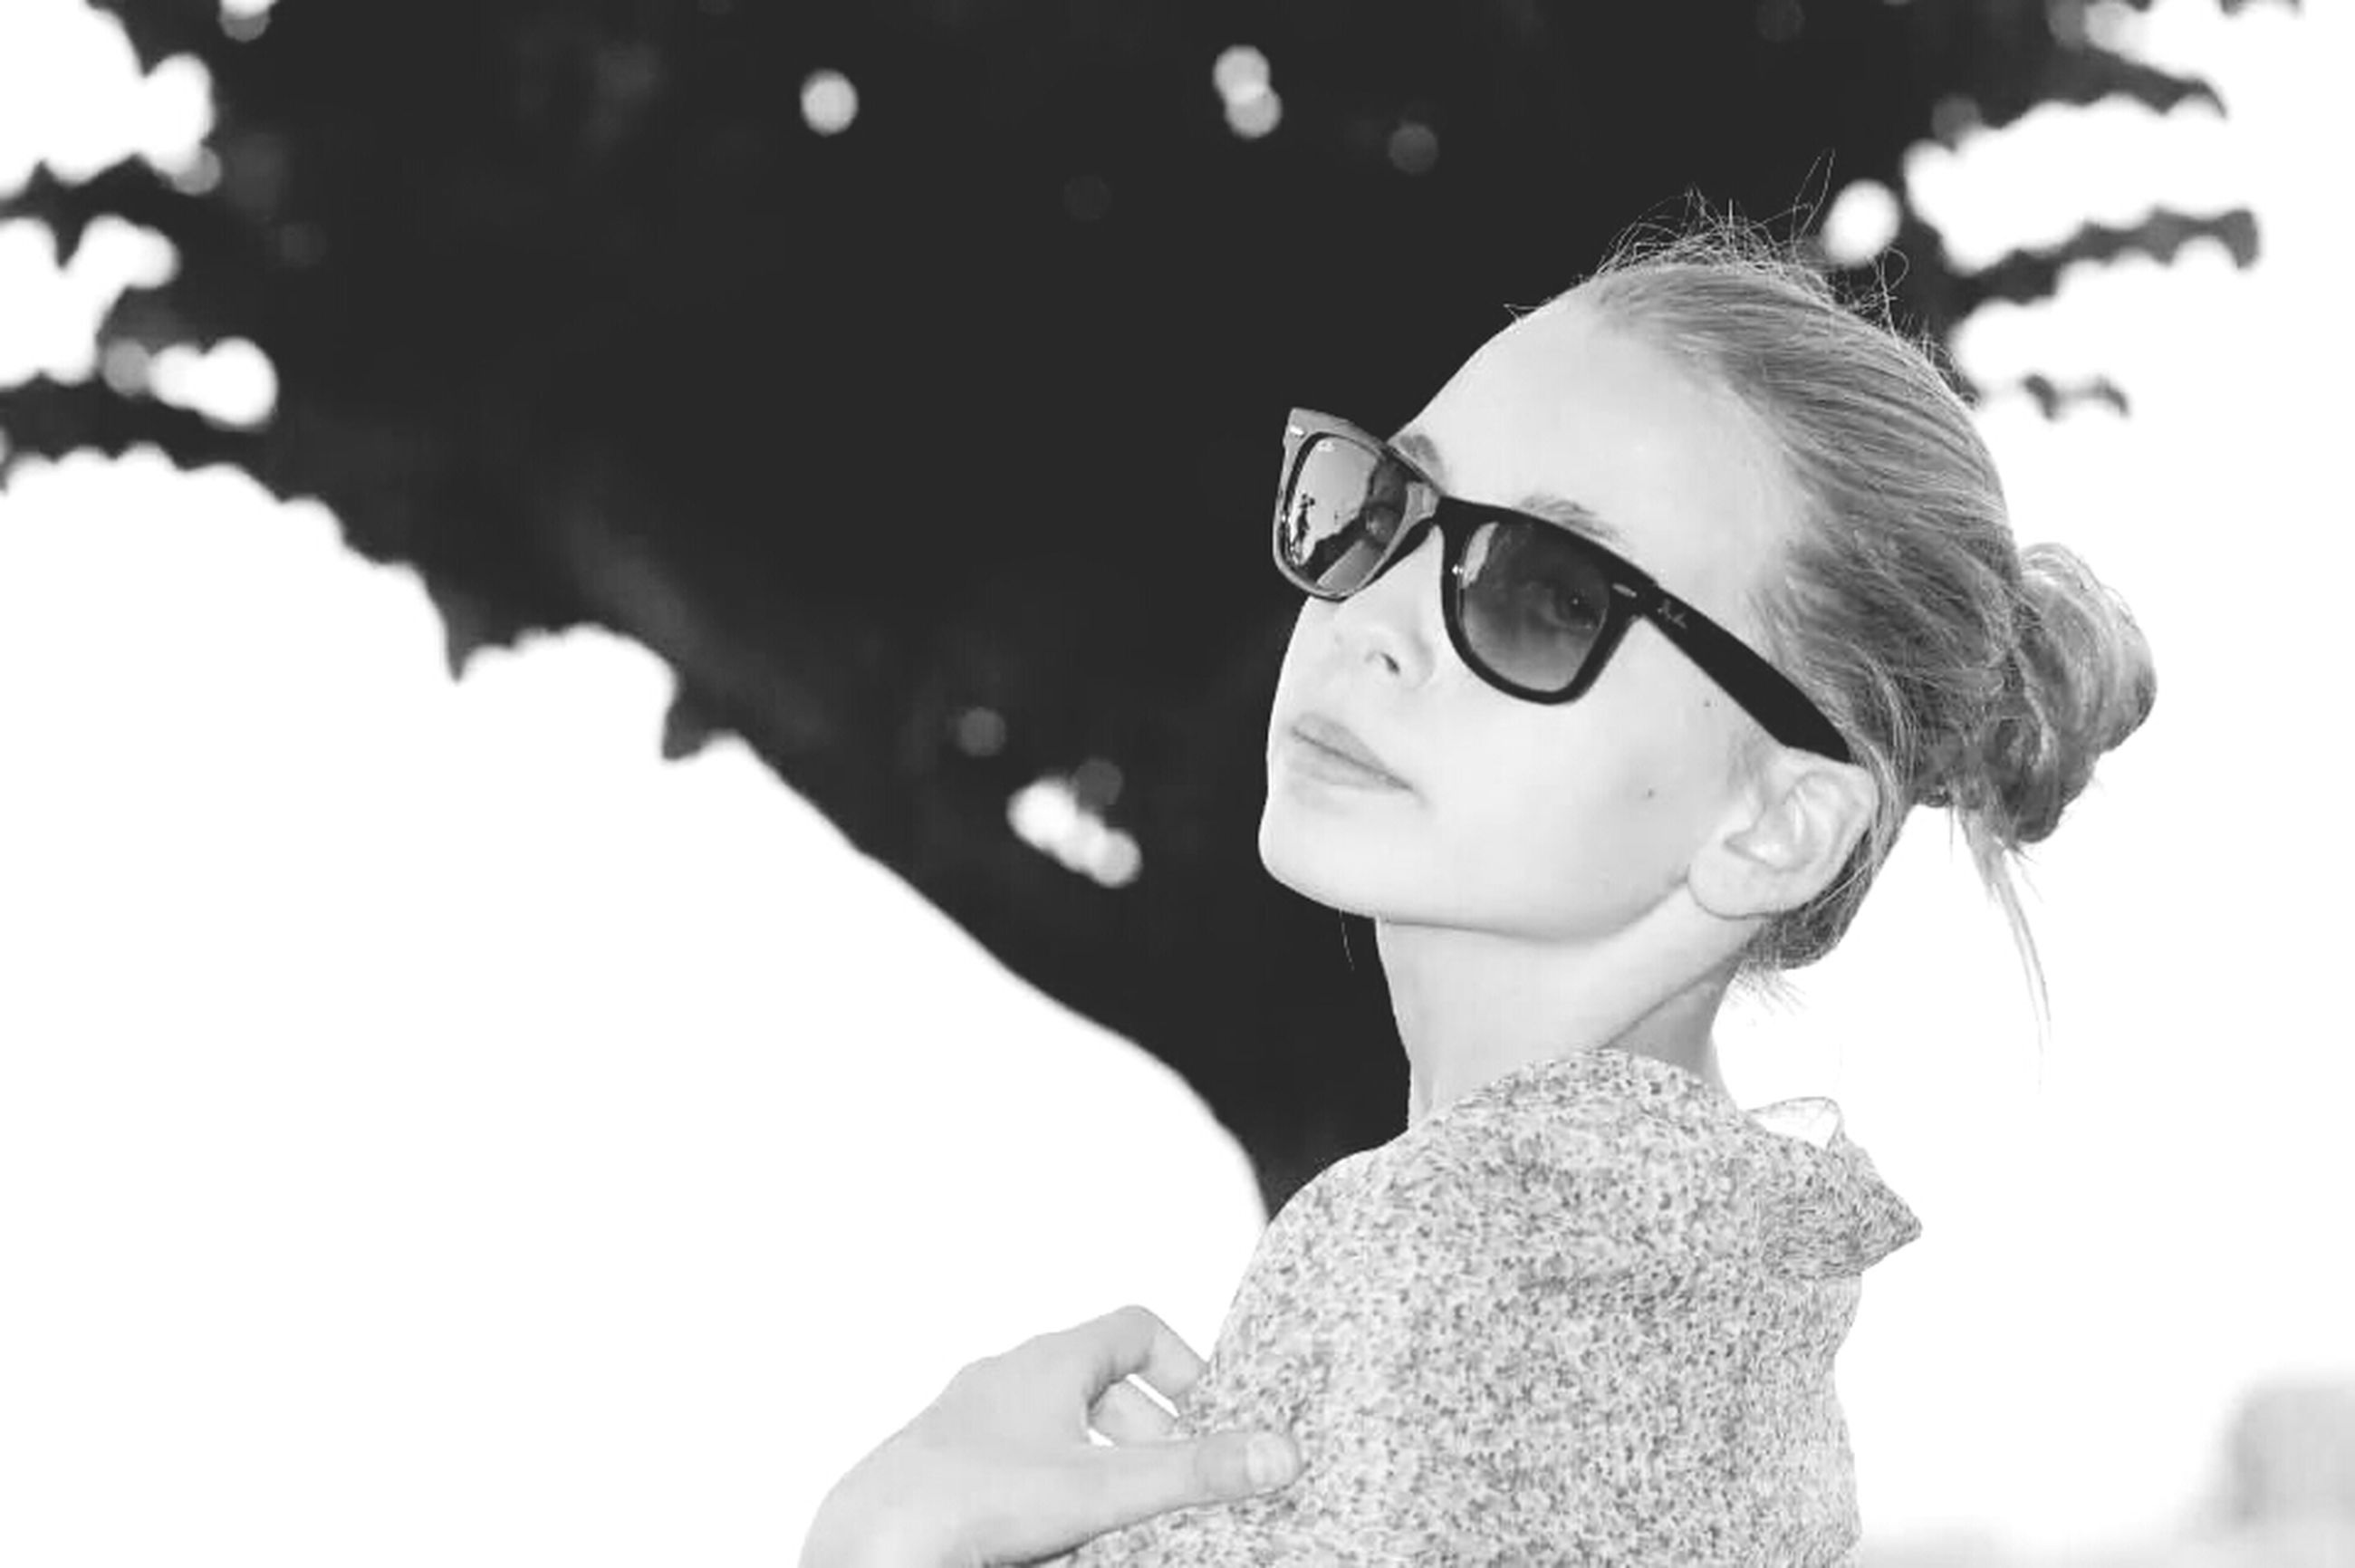 headshot, lifestyles, person, young adult, leisure activity, focus on foreground, sunglasses, portrait, looking at camera, head and shoulders, front view, casual clothing, close-up, holding, waist up, young women, smiling, human face